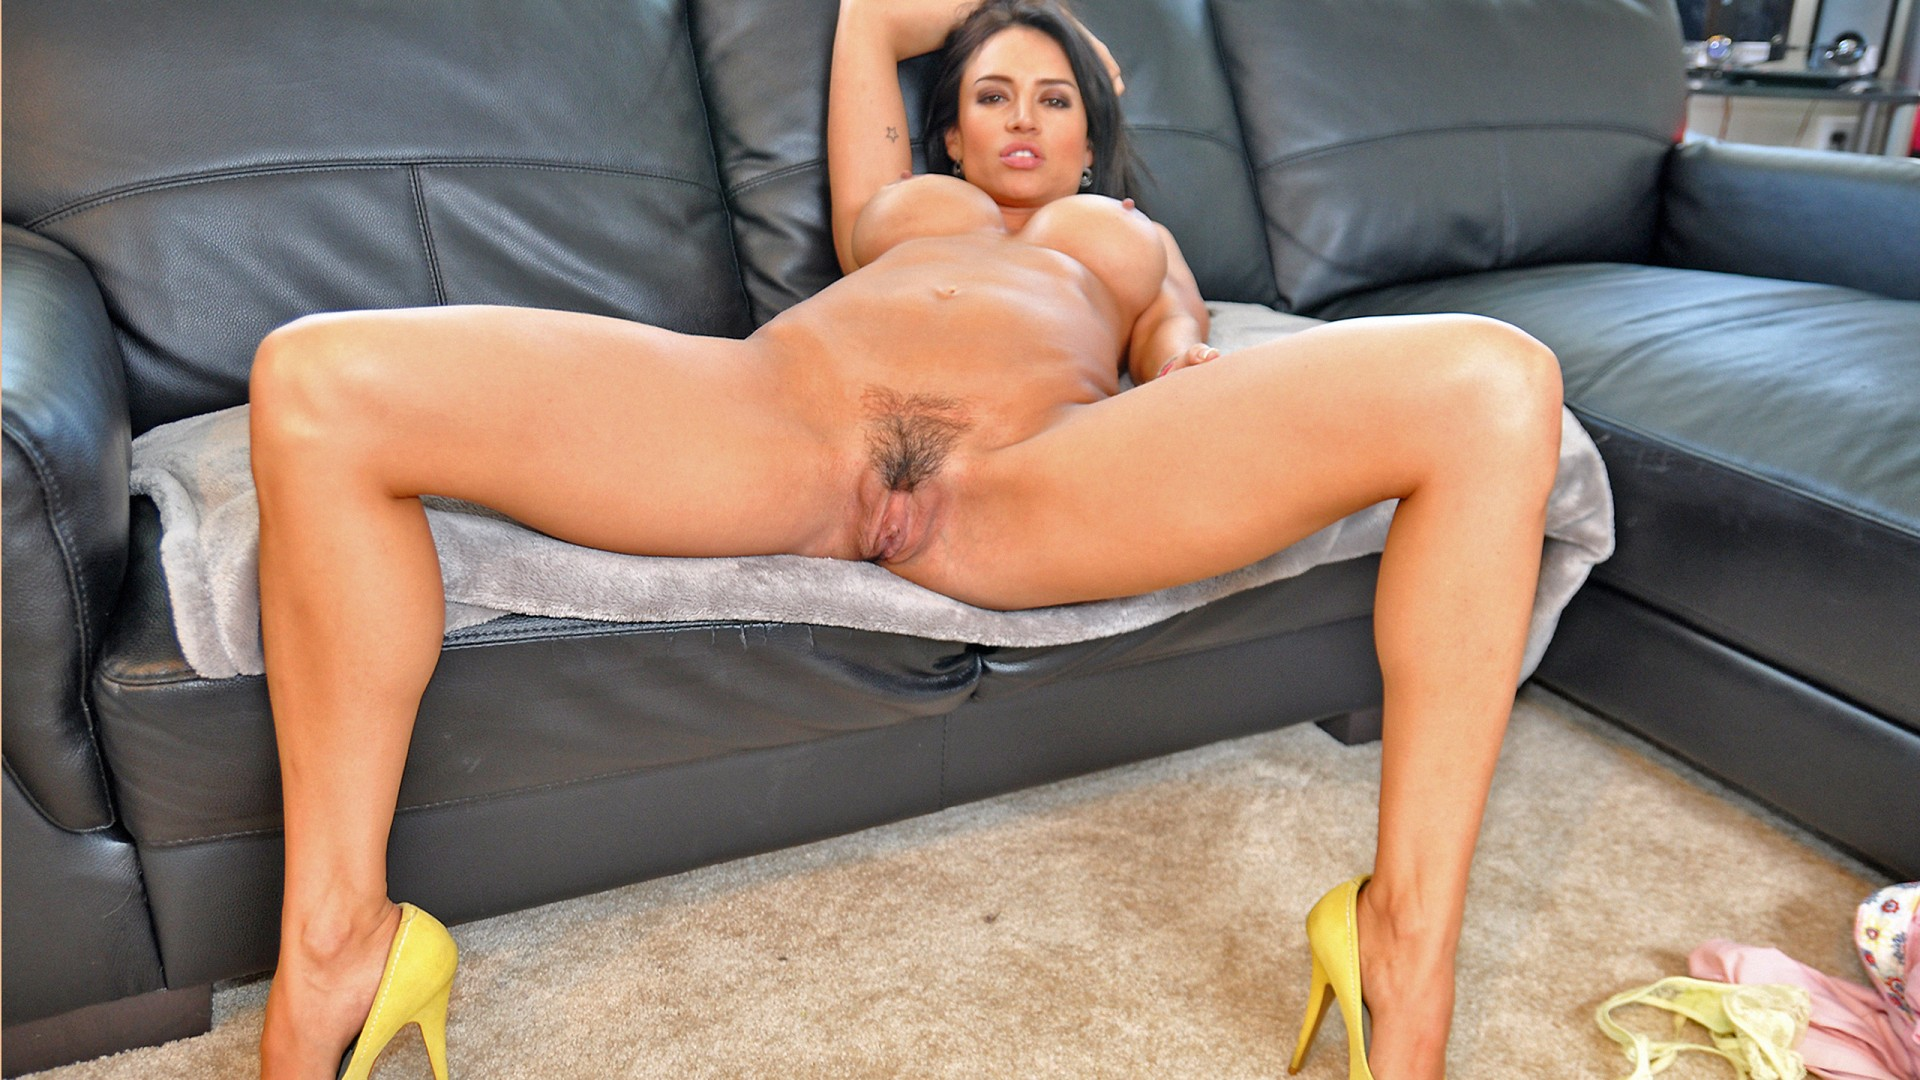 woman nude picture pussy showing